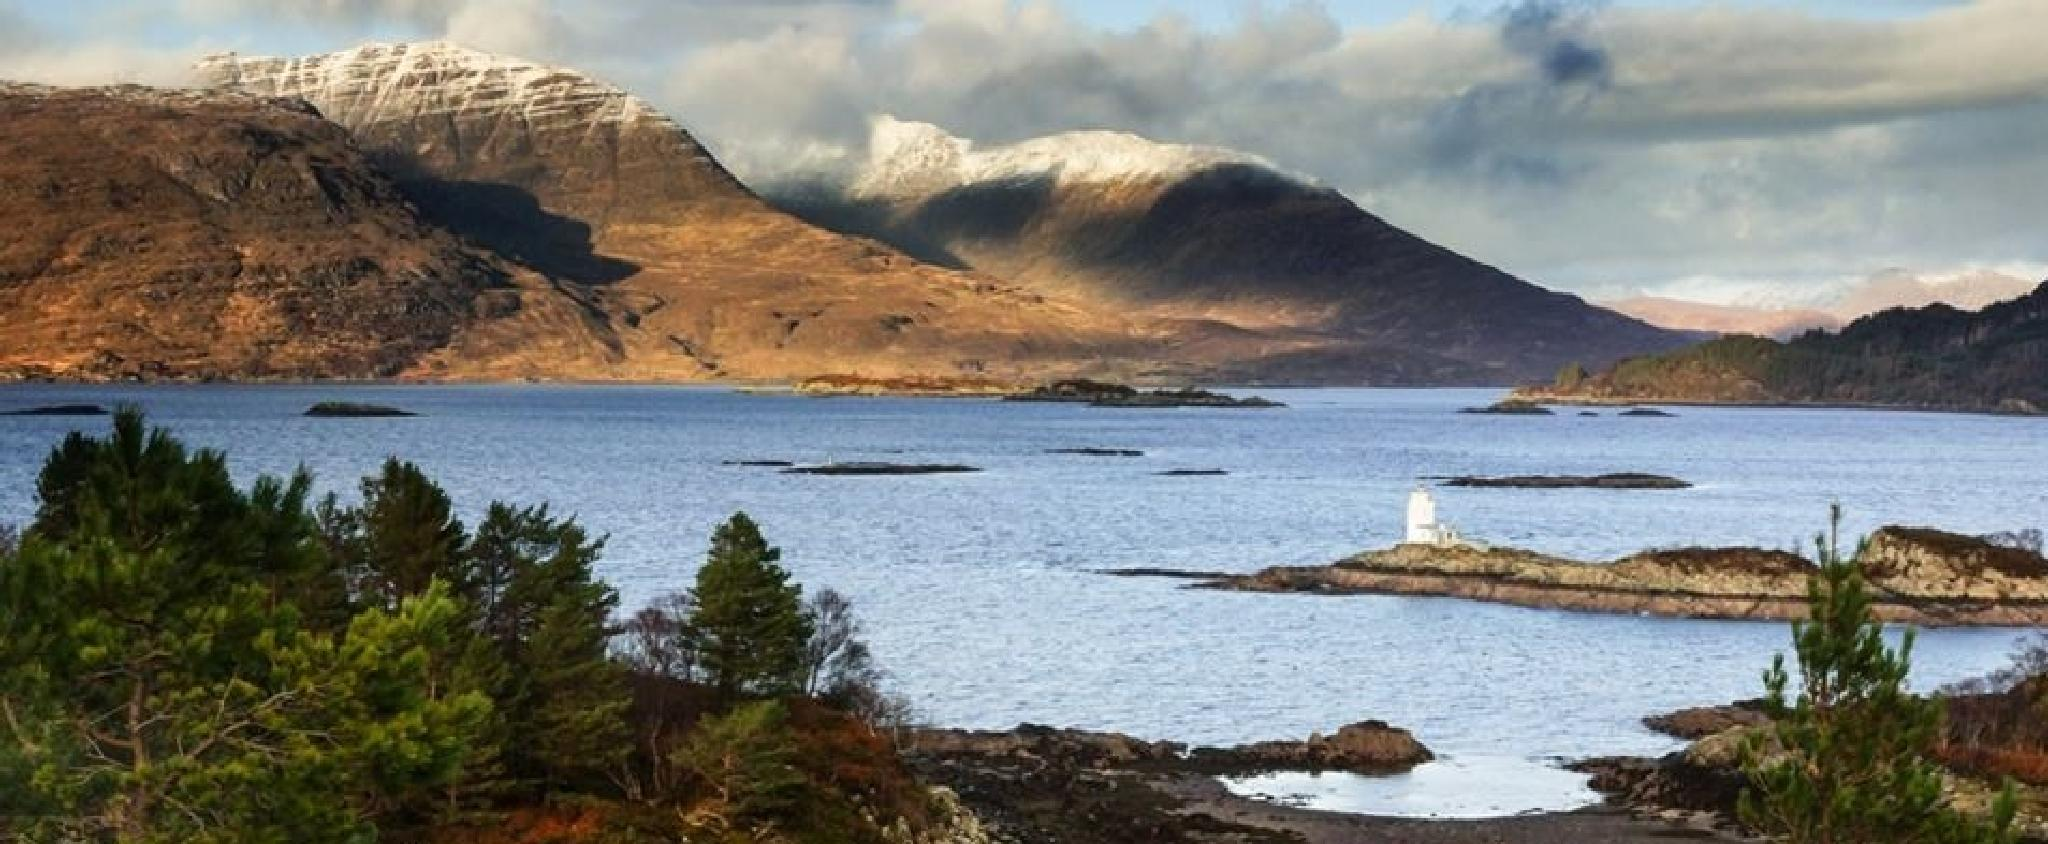 View from Plockton, Wester Ross by Scottish Landscapes